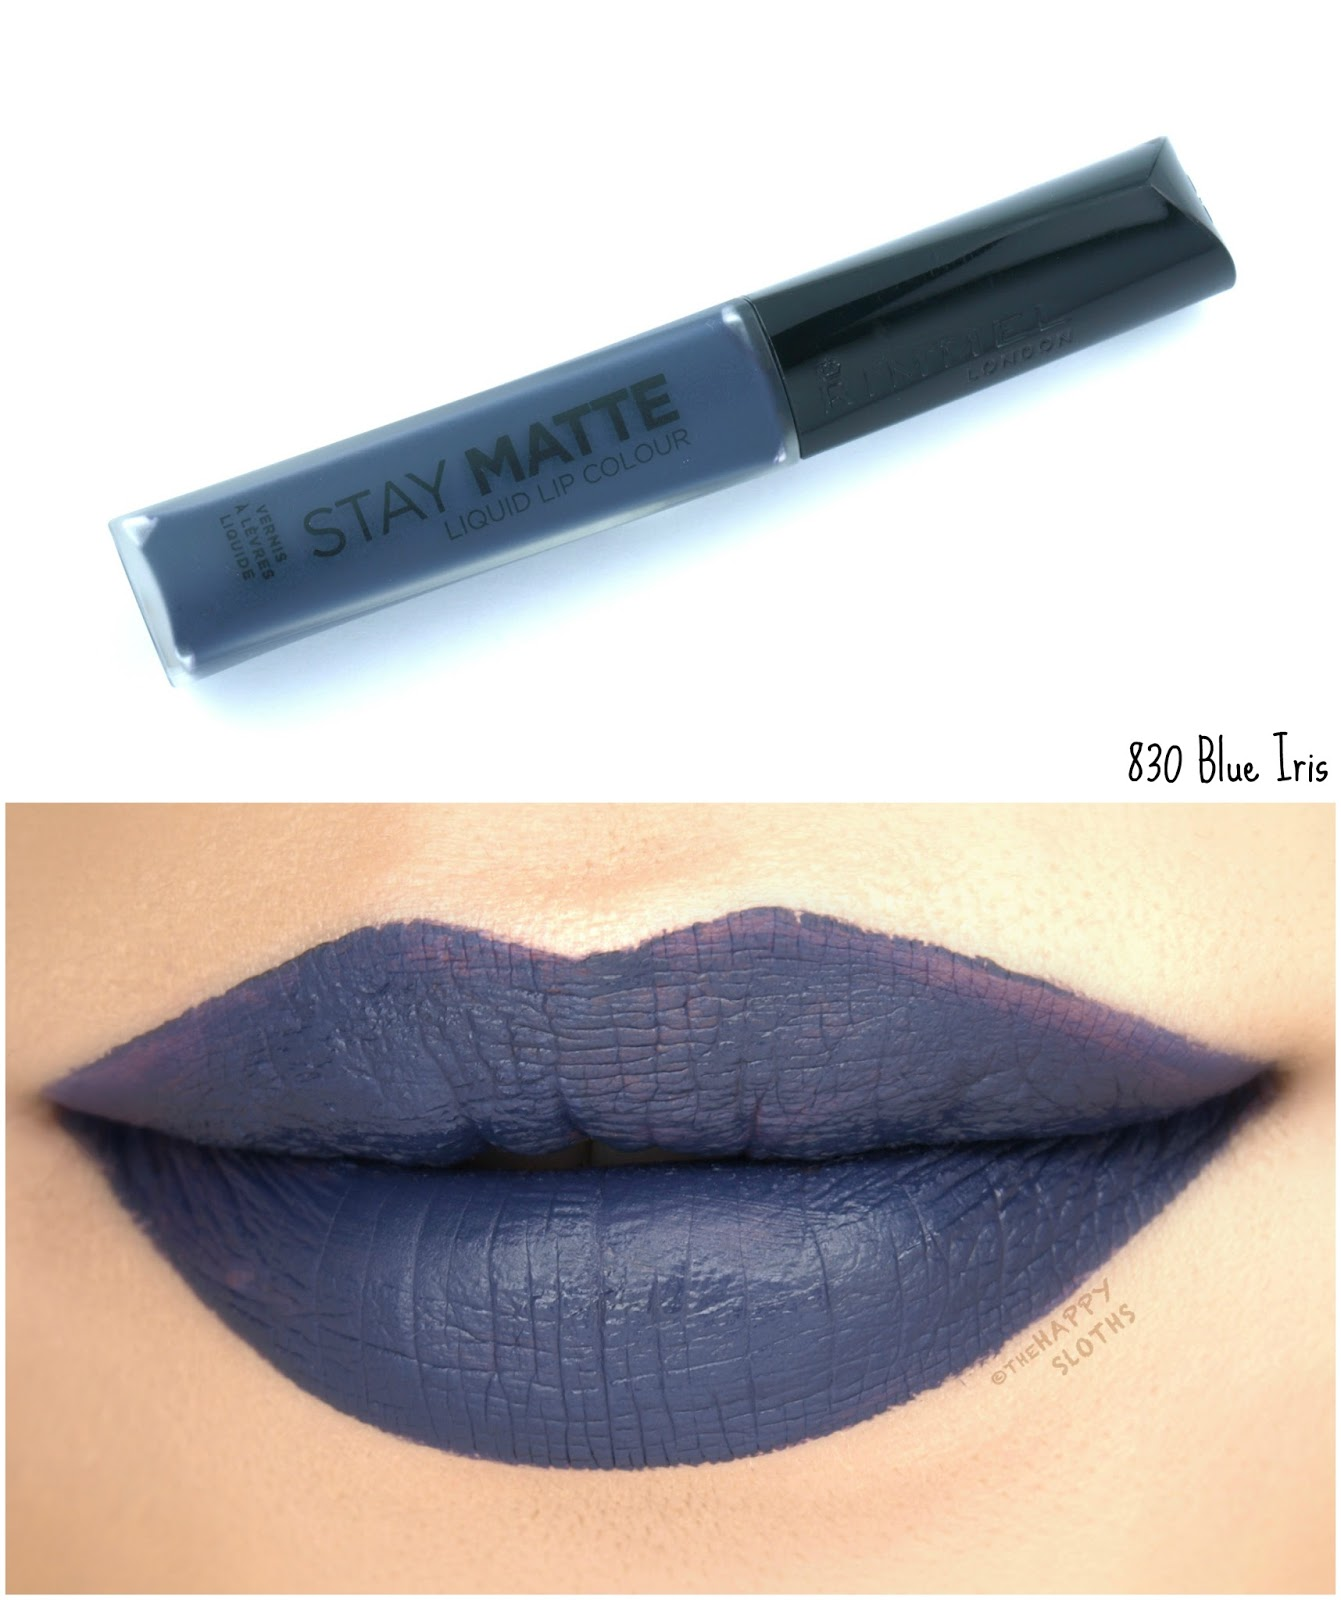 Rimmel London Stay Matte Liquid Lip Colour | 830 Blue Iris: Review and Swatches